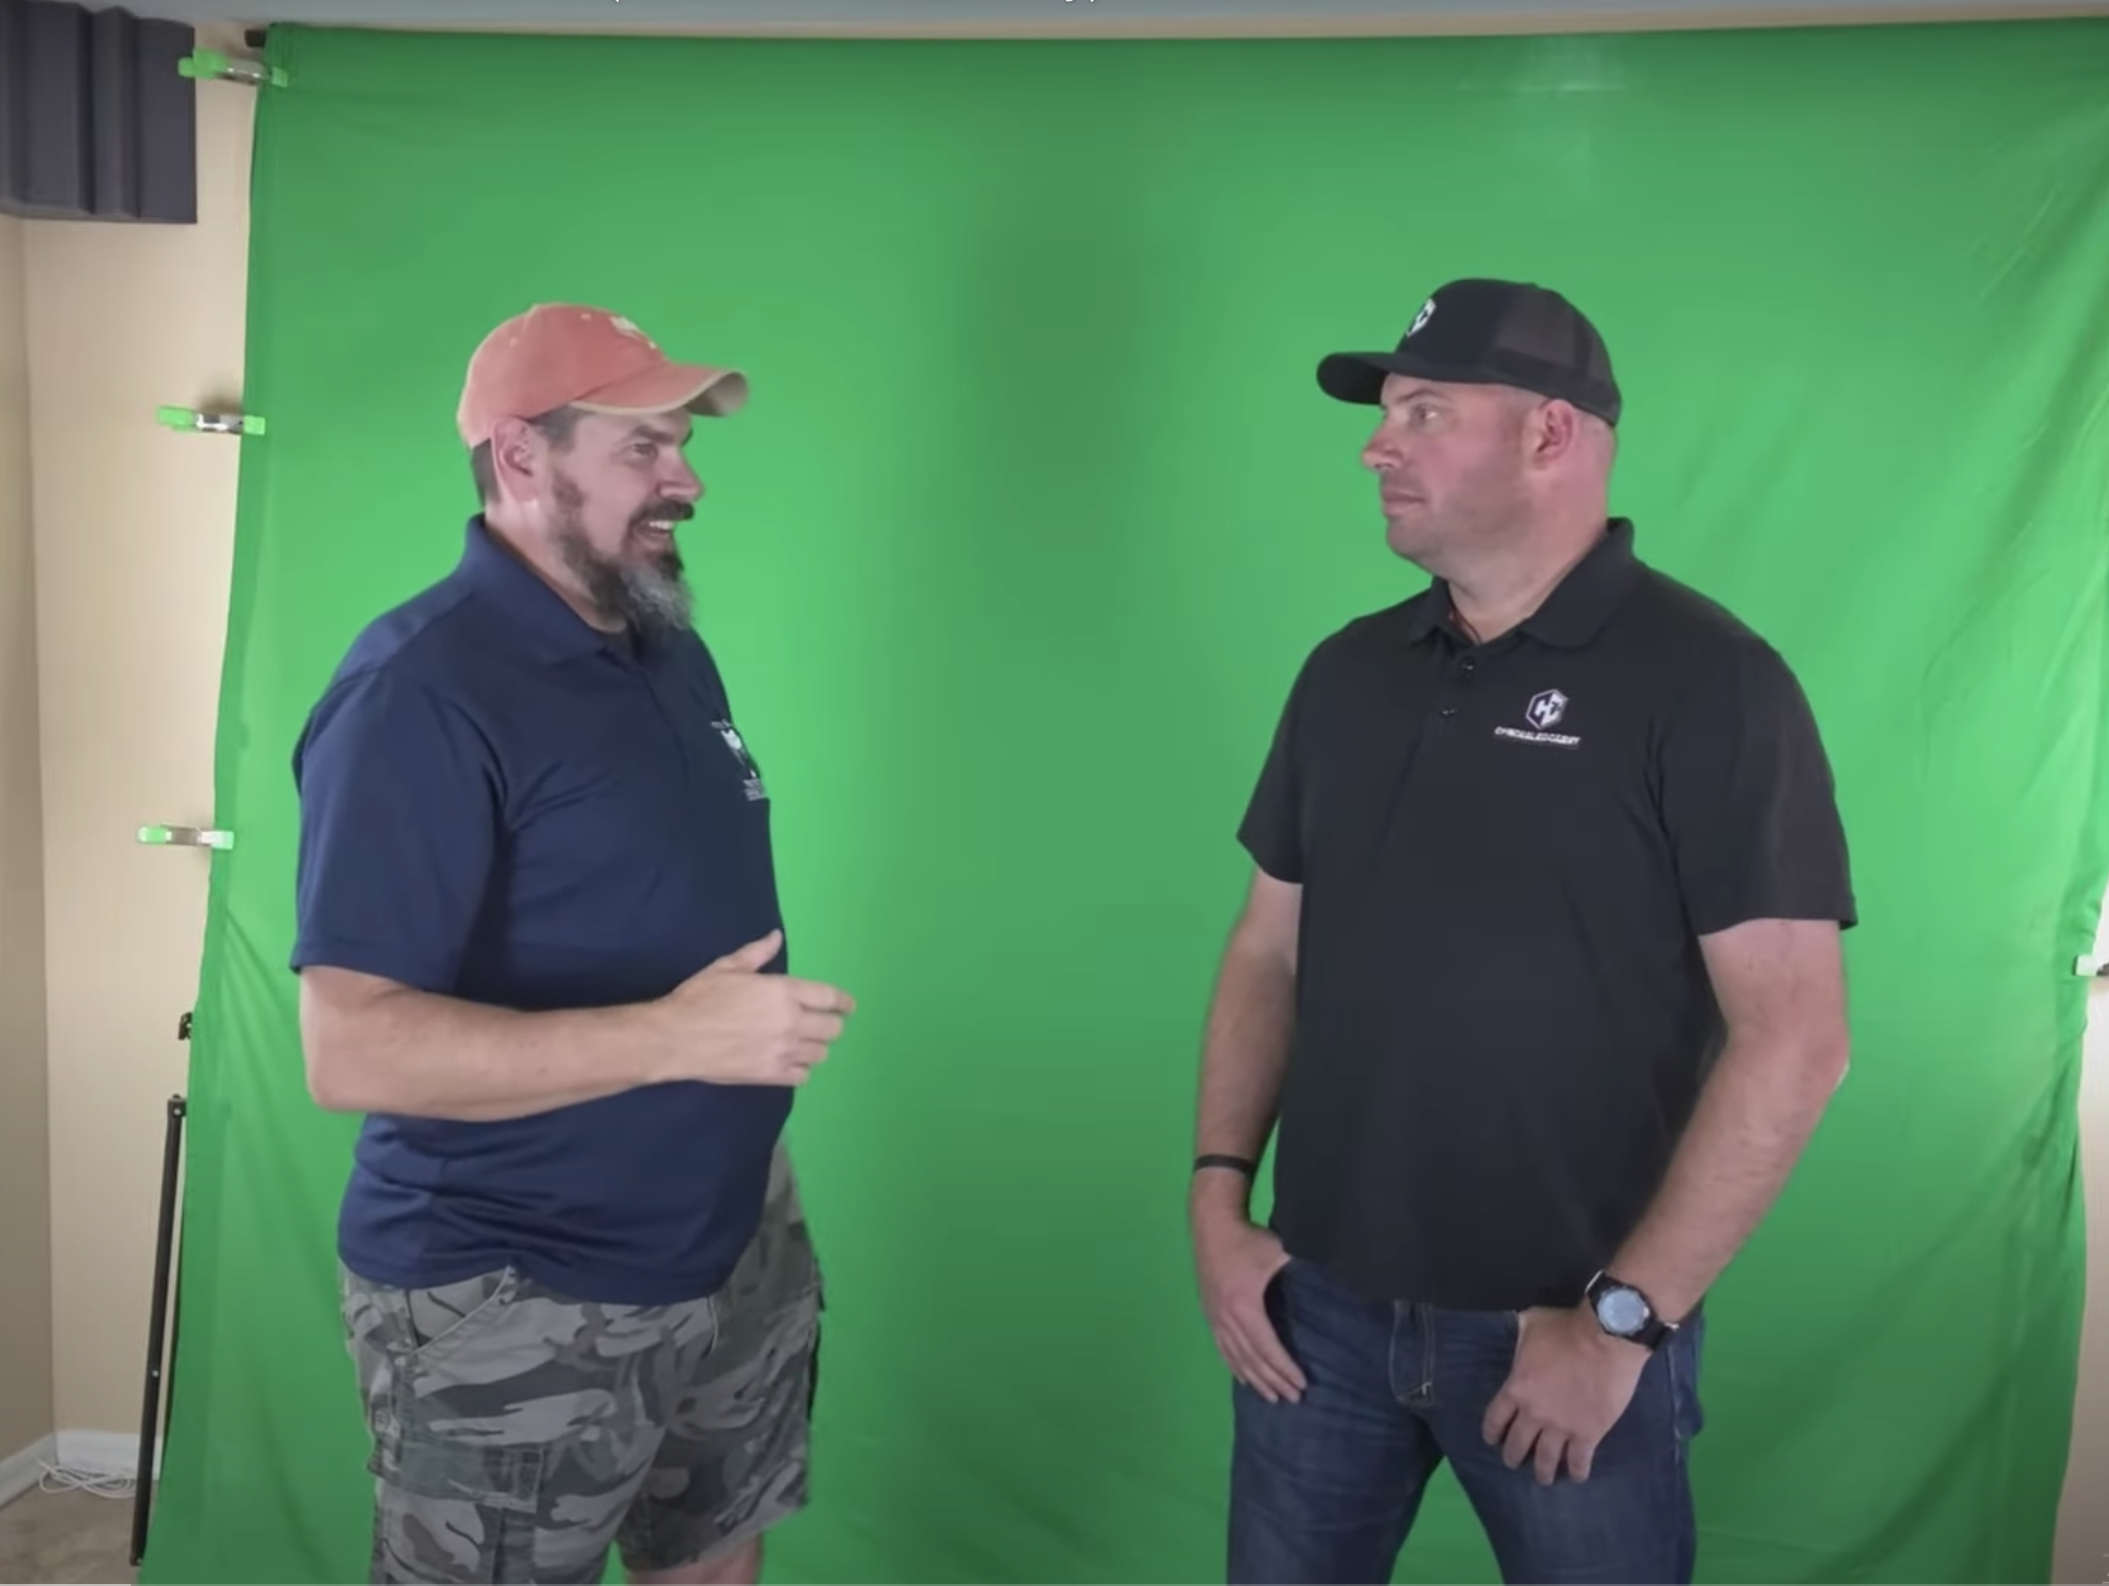 Riley Bowman on Active Self Protection Extra with Neil Weidner